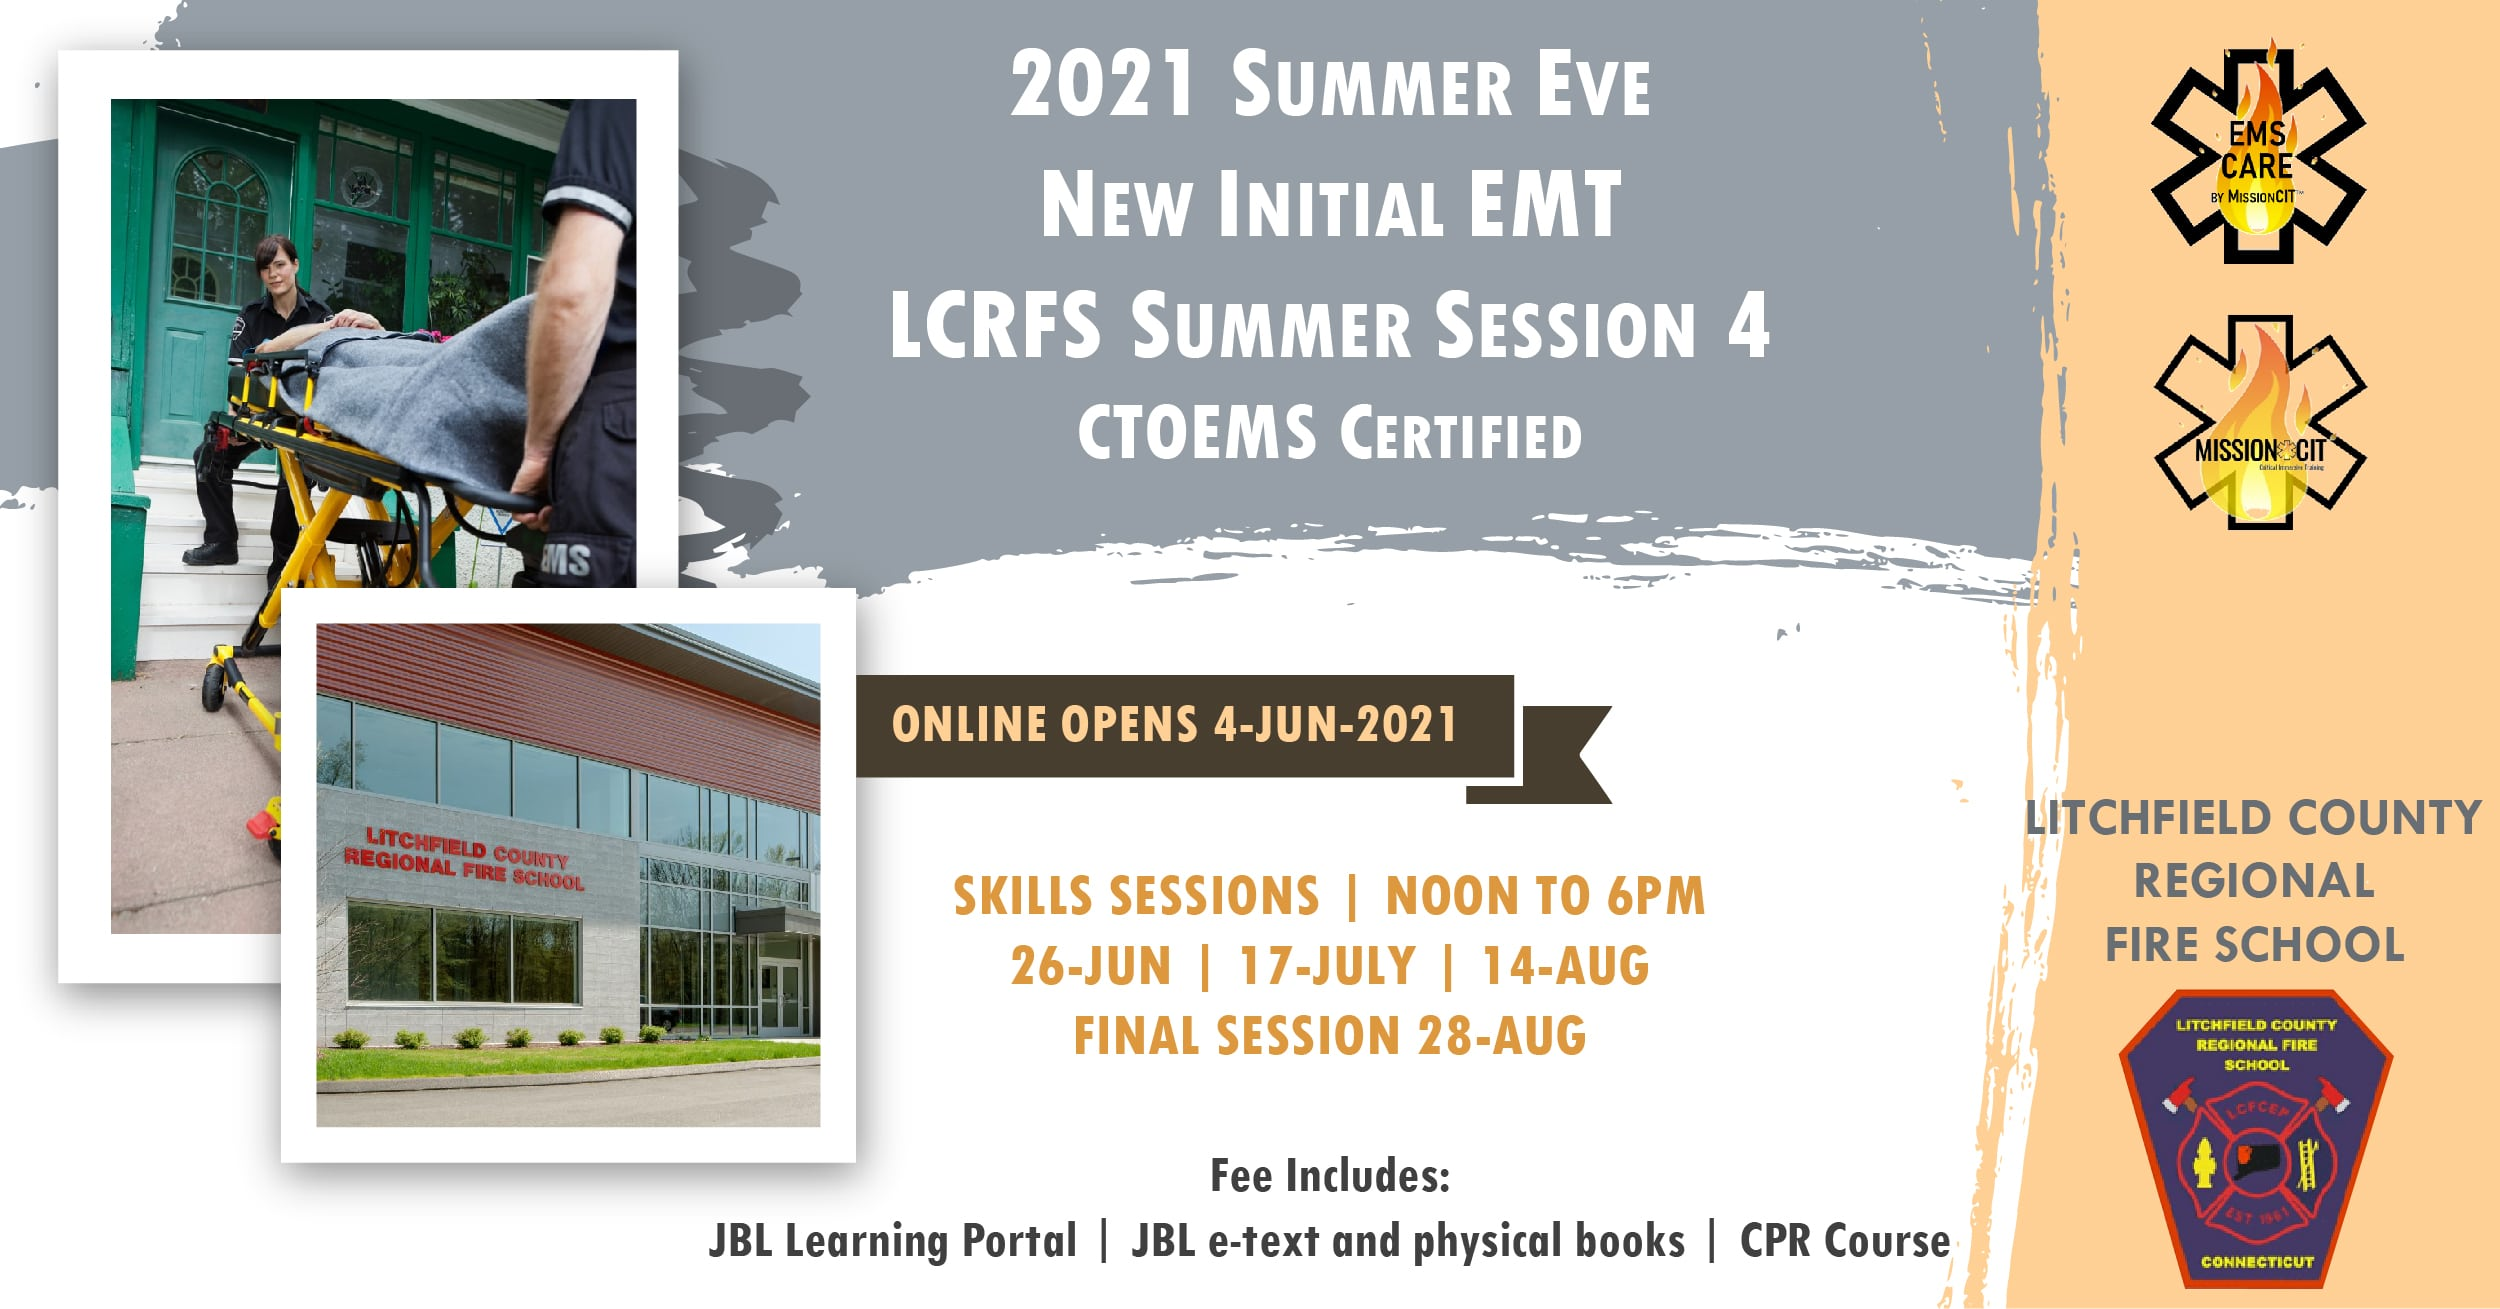 2021 Summer EMT Initial Course | LCRFS Session 4